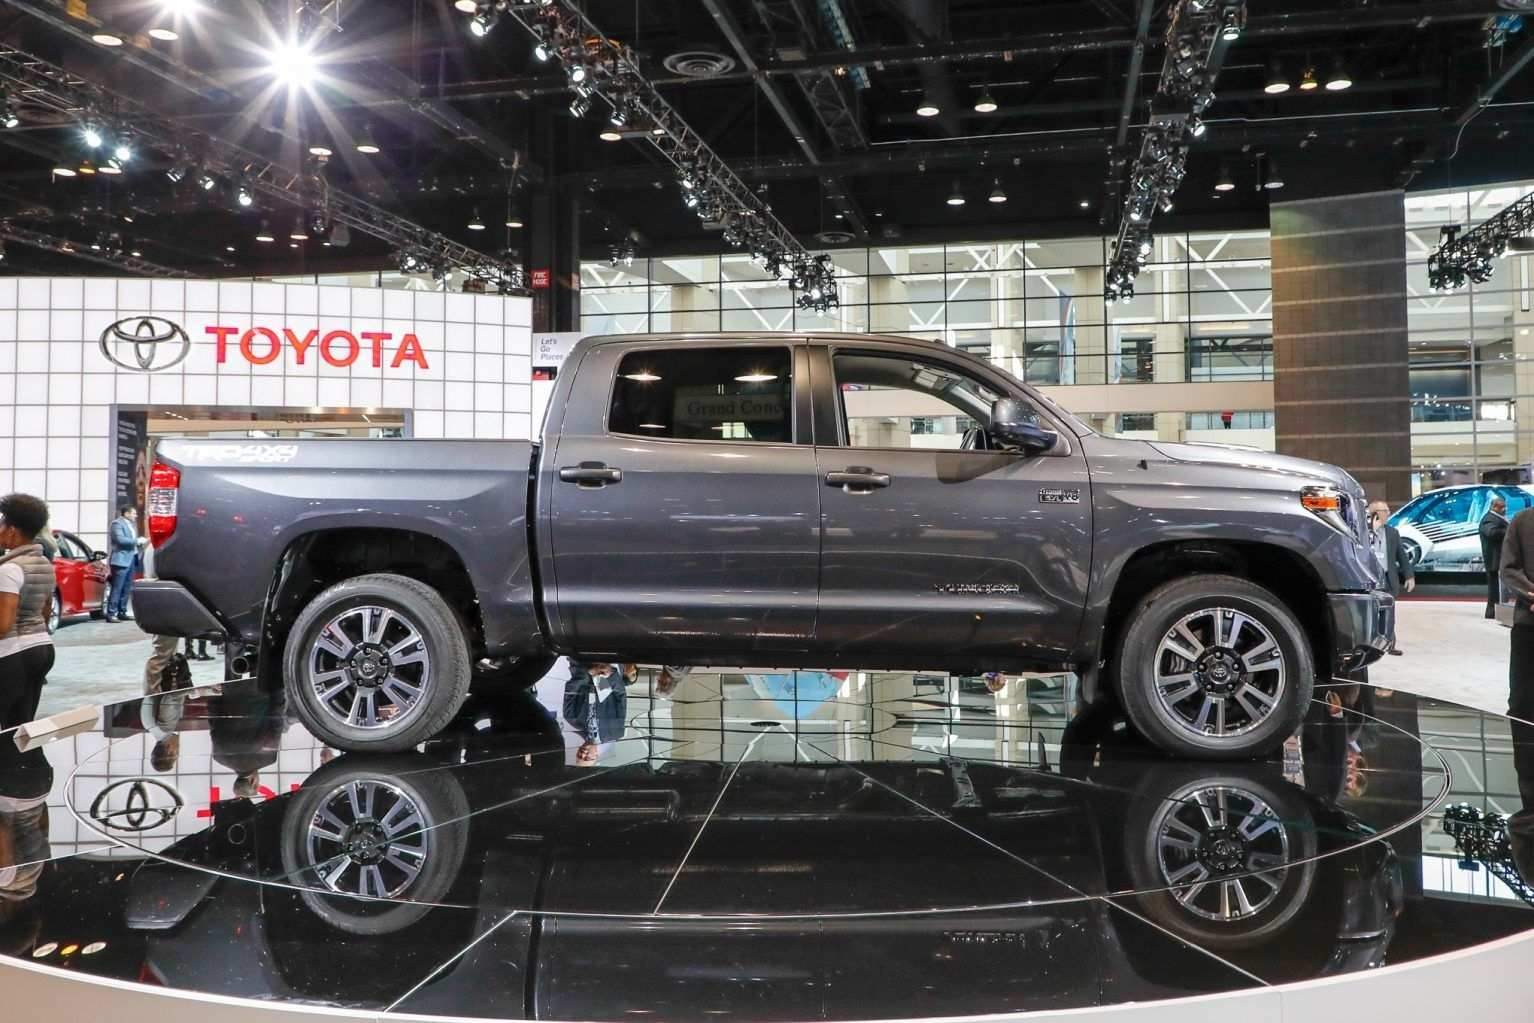 94 All New New 2019 Toyota Tundra Release Date Price And Review Style for New 2019 Toyota Tundra Release Date Price And Review